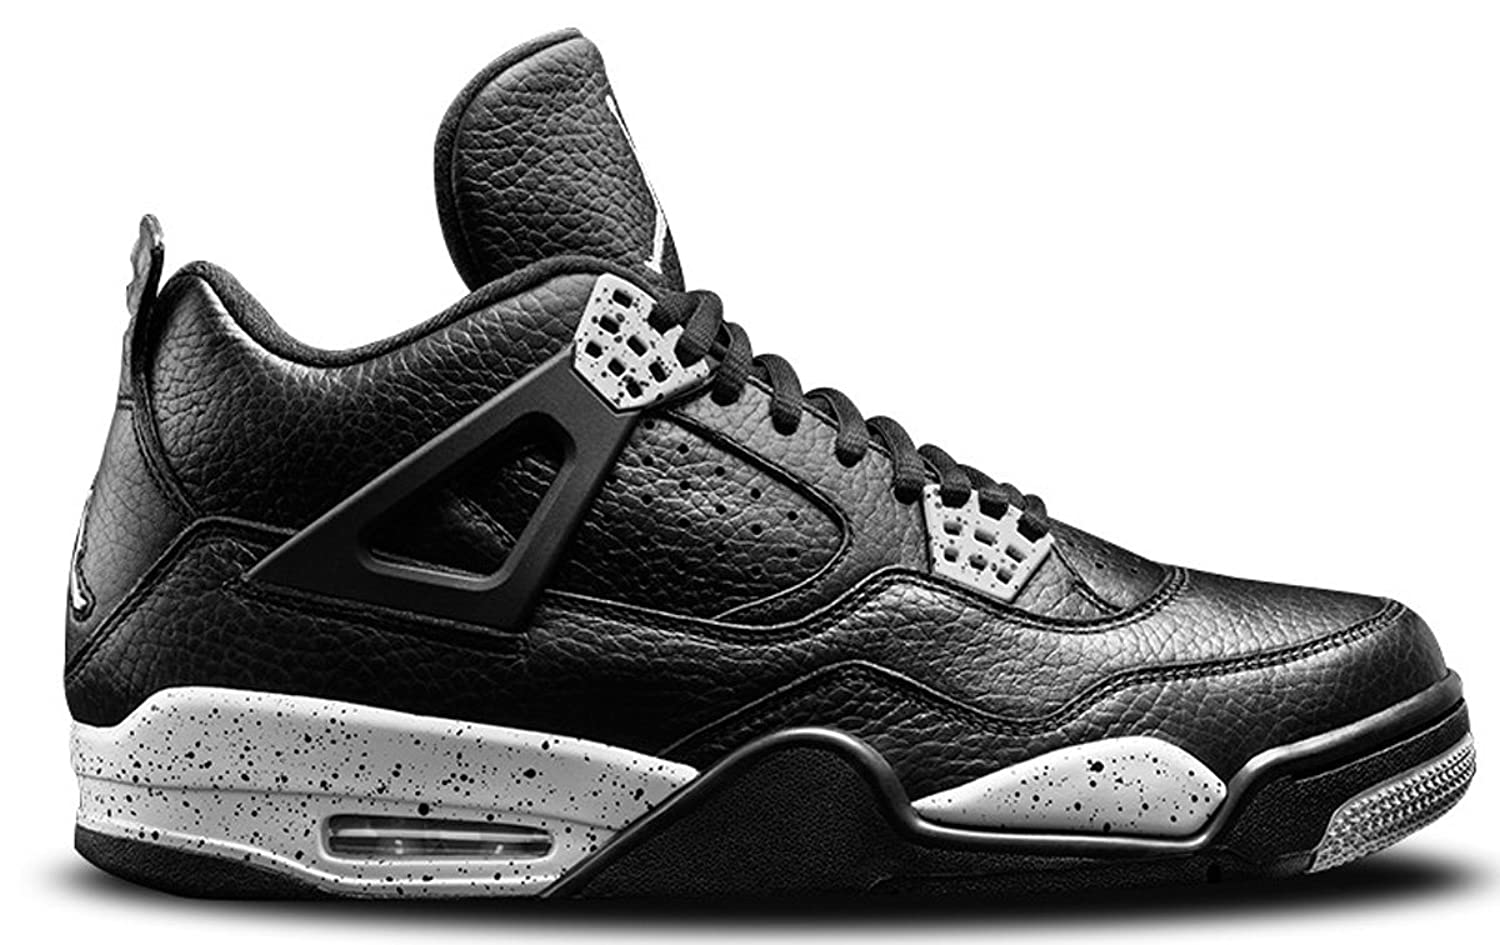 Air Jordan 4 Retro LS Oreo Iv Men Casual Sneakers New Black Tech Grey